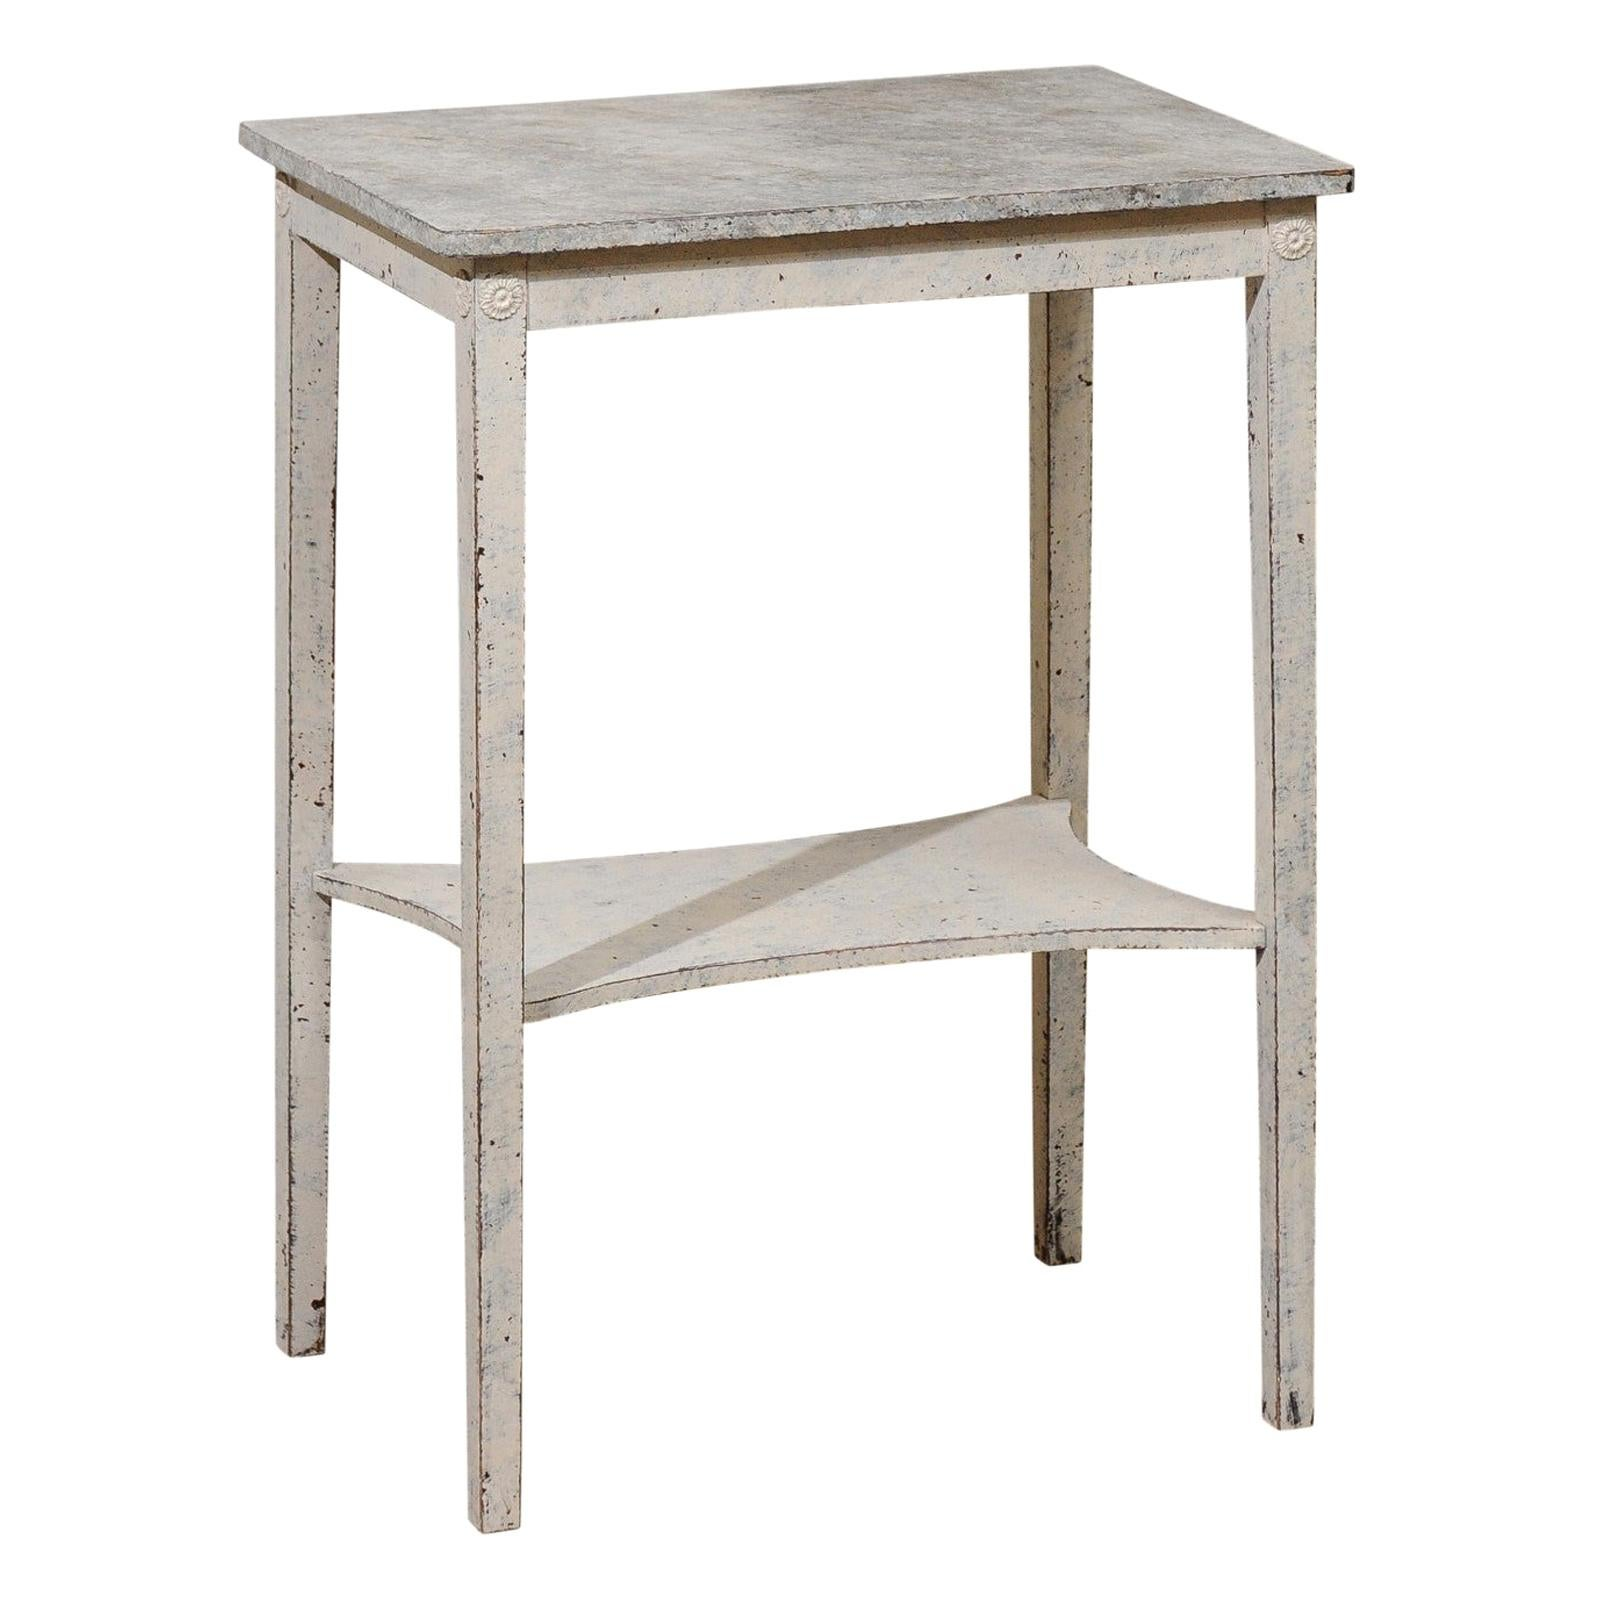 Swedish 19th Century Painted Side Table with Marbleized Top and In-Curving Shelf